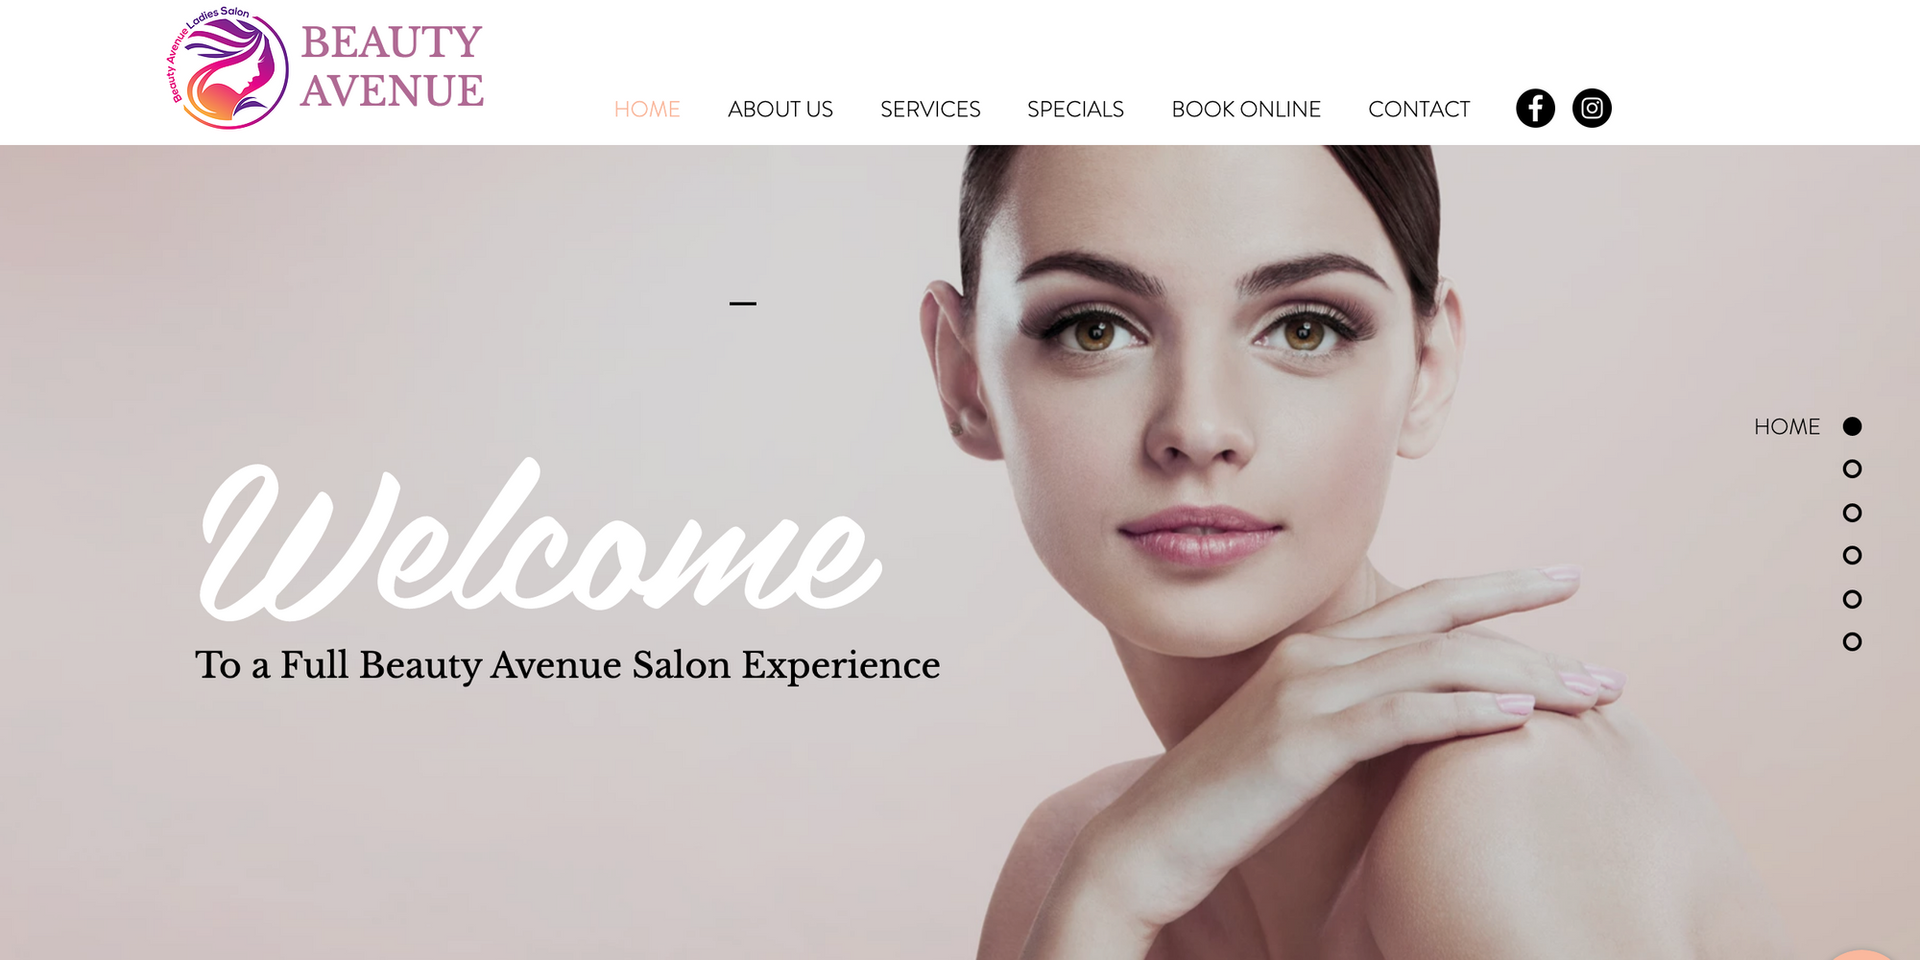 Beauty Avenue Salon